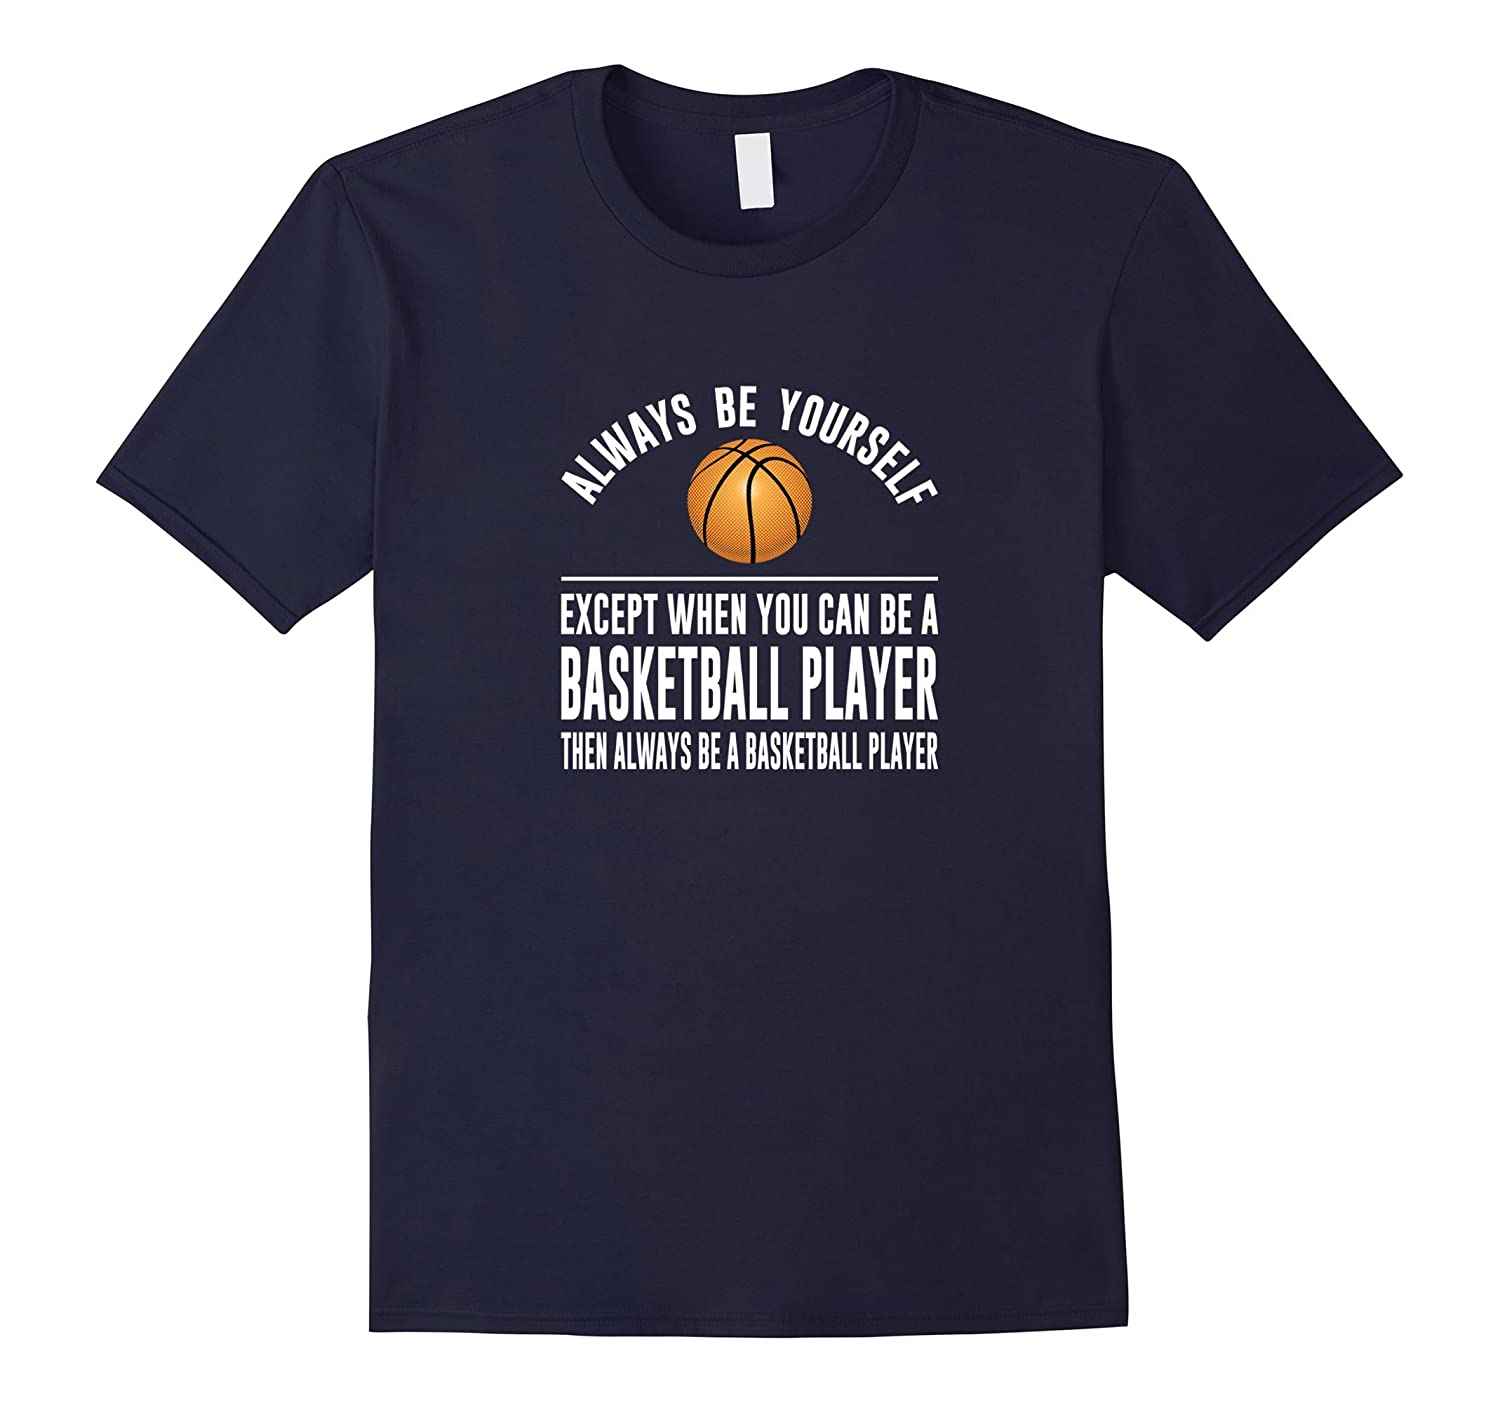 Always Be Yourself - Except if You Can Be Basketball Player-TD